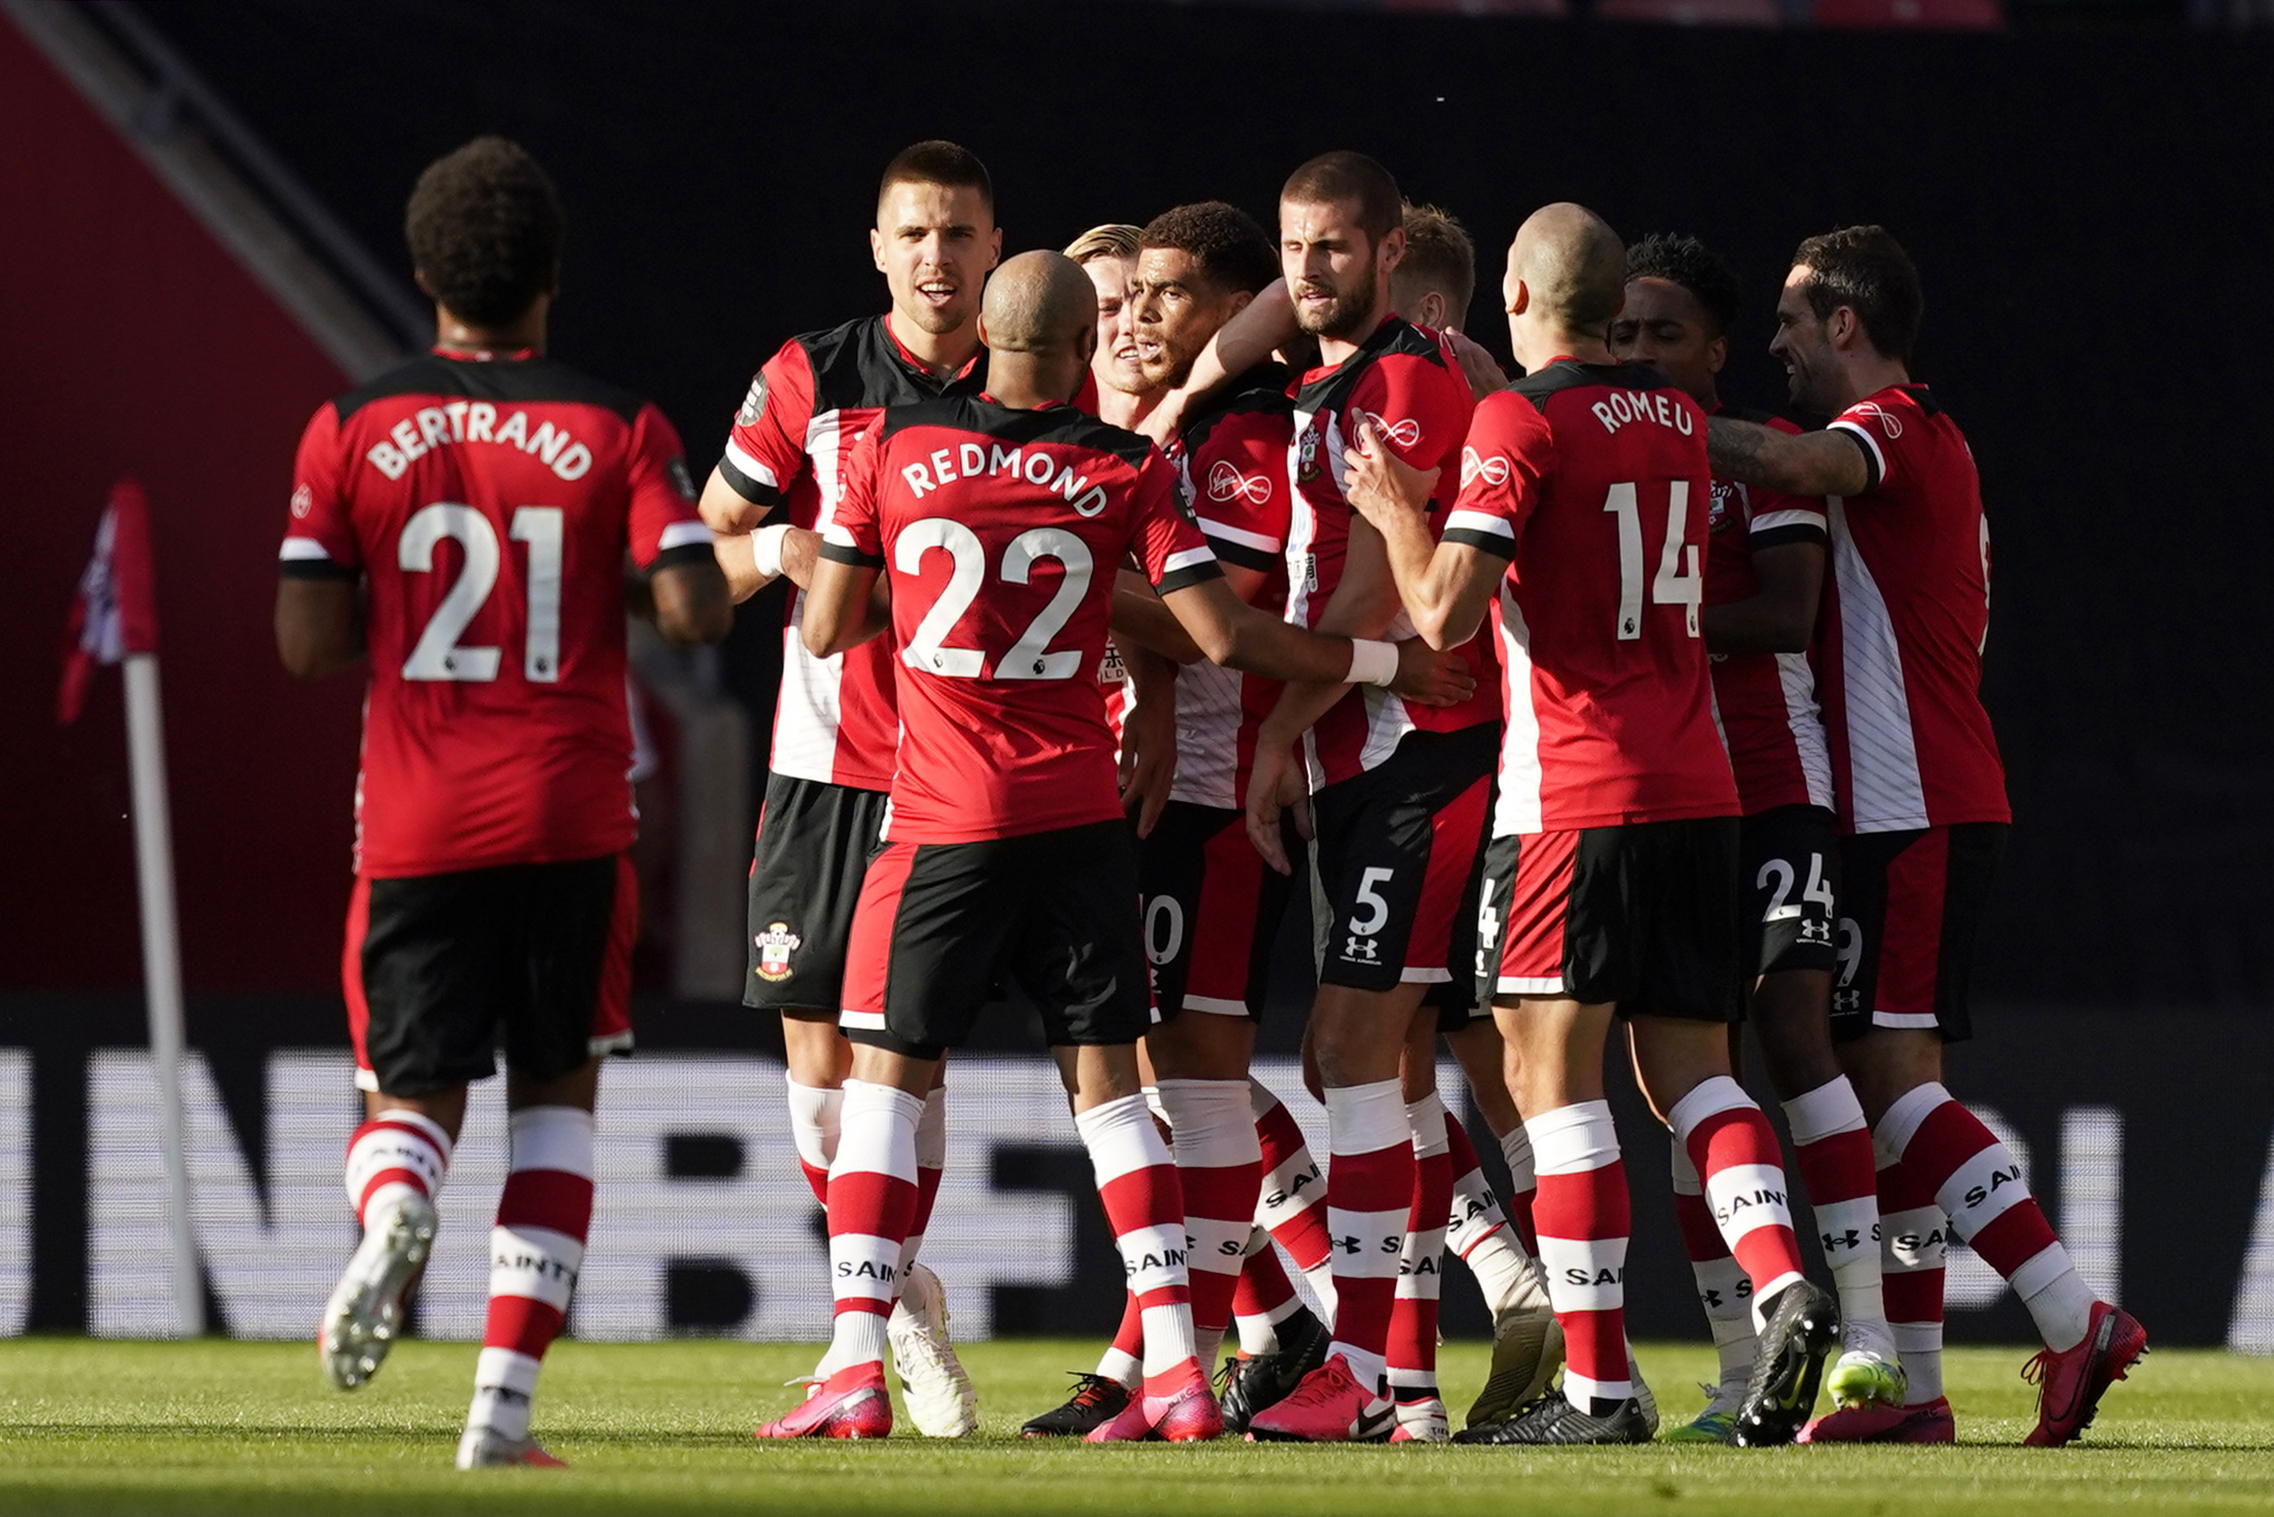 Southampton's Che Adams celebrates scoring their first goal with teammates, as play resumes behind closed doors following the outbreak of the coronavirus disease (COVID-19). Photo: Reuters